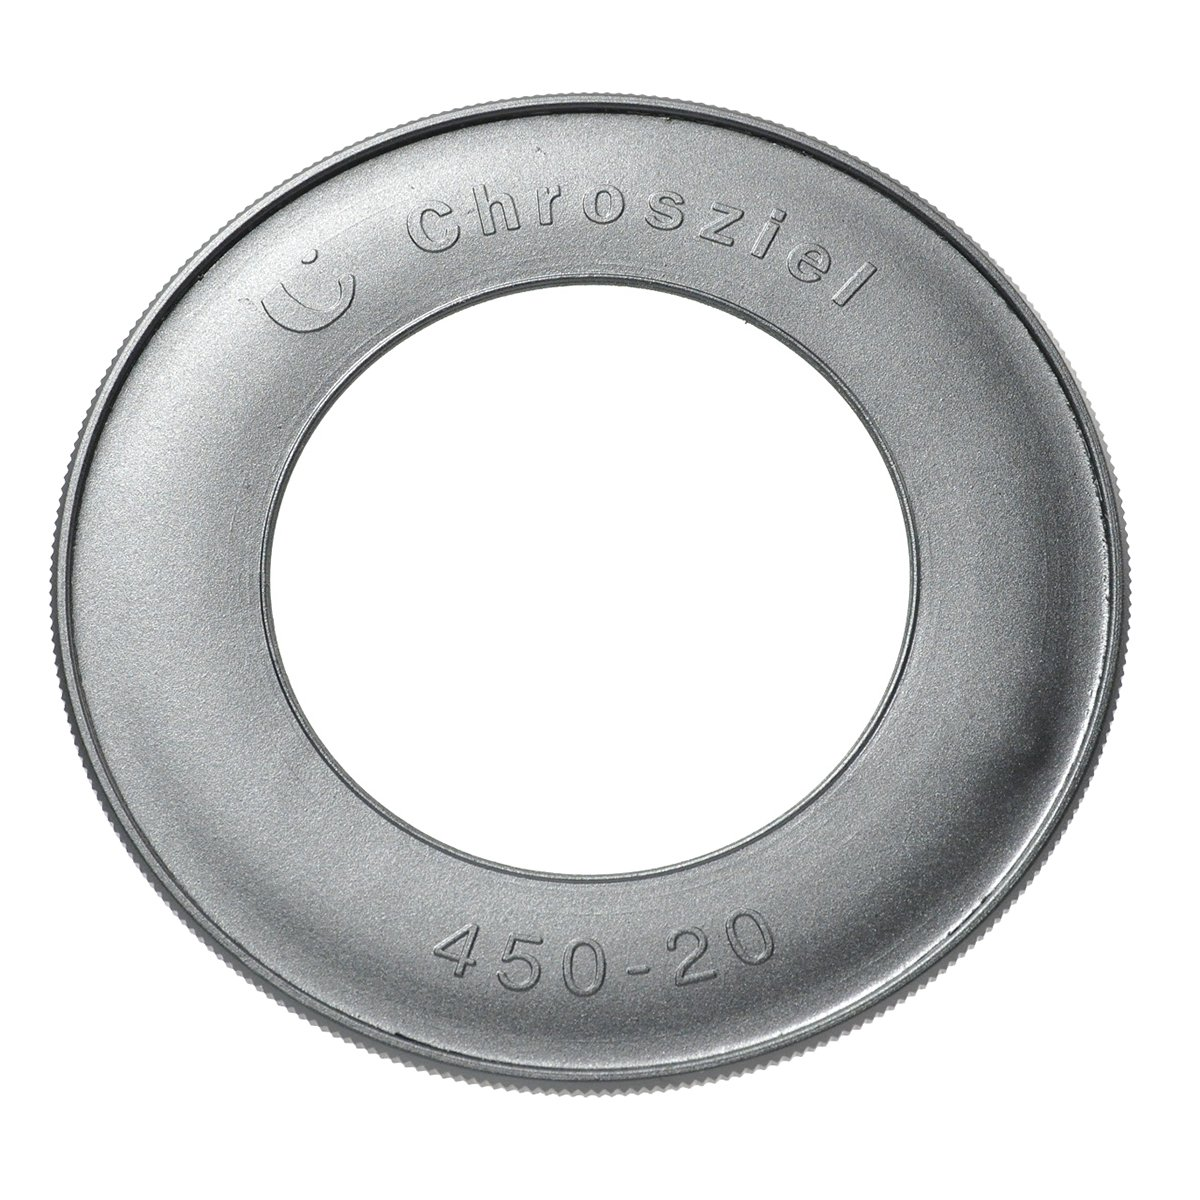 CHROSZIEL C-450-20 Flexi-Ring 110mm for Lenses of 75mm to 98mm Diameter, Use with 450-R21 Matte Box (Black) by Chrosziel